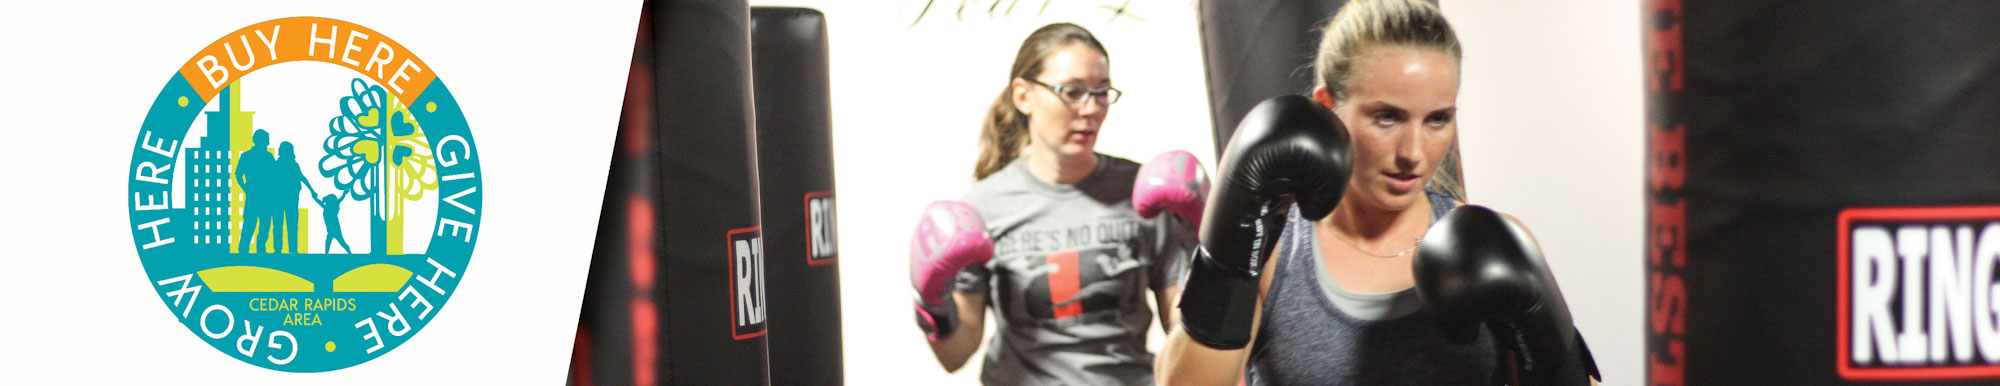 There's No Quit! Kickboxing Studio participants